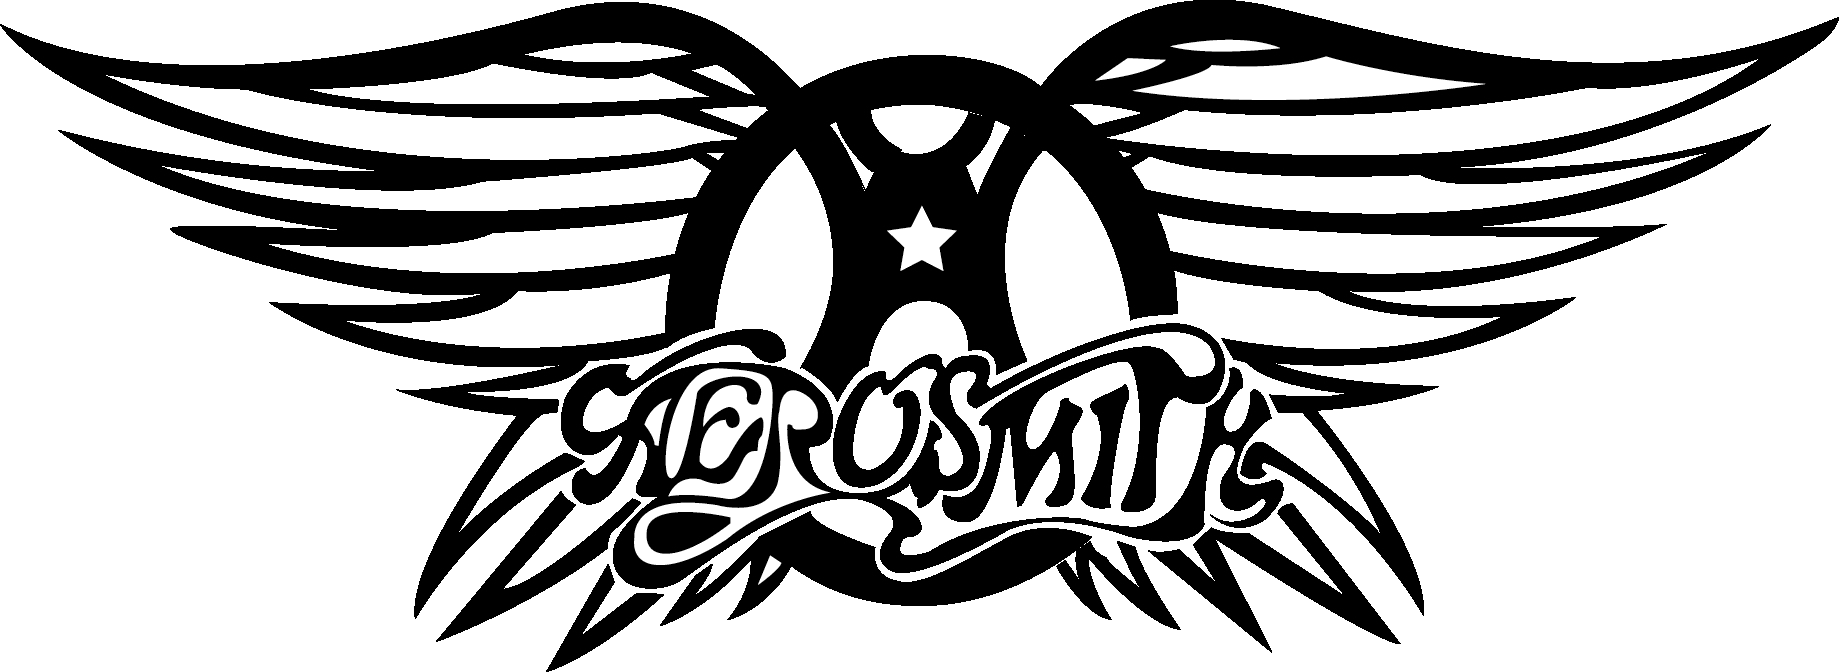 Aerosmith Logo Free Vector Download - FreeLogoVectors